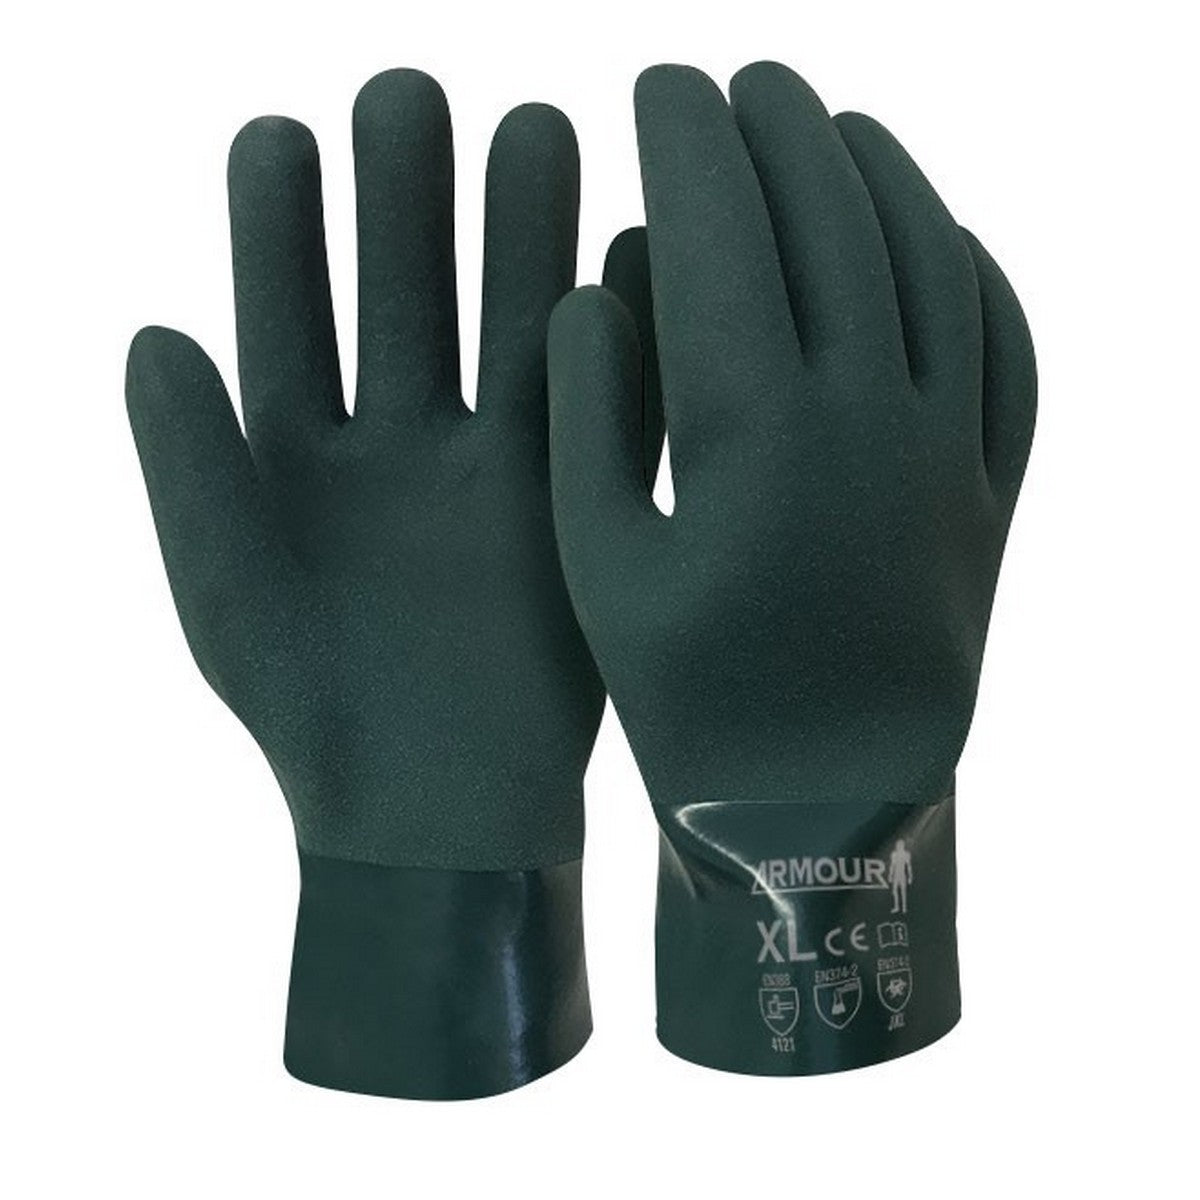 Image of Armour PVC Gauntlet Glove 27cm